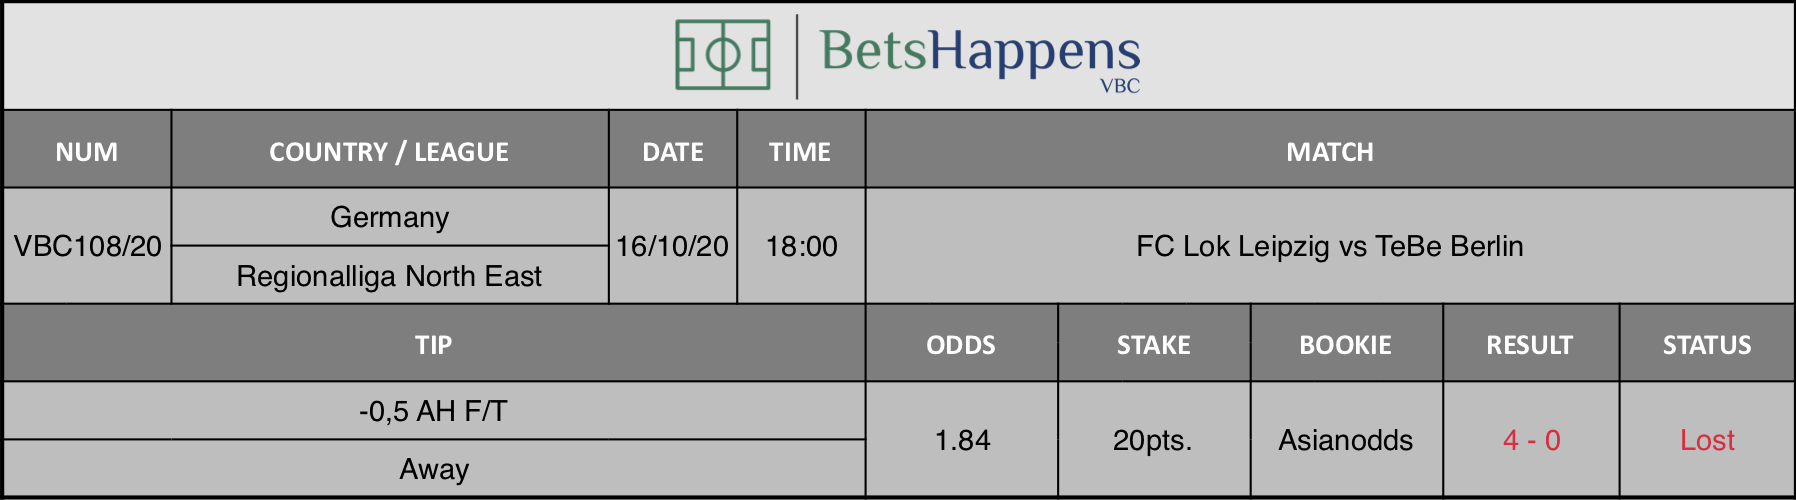 Results of our advice for the FC Lok Leipzig vs TeBe Berlin match in which -0.5 AH F / T Away is recommended.